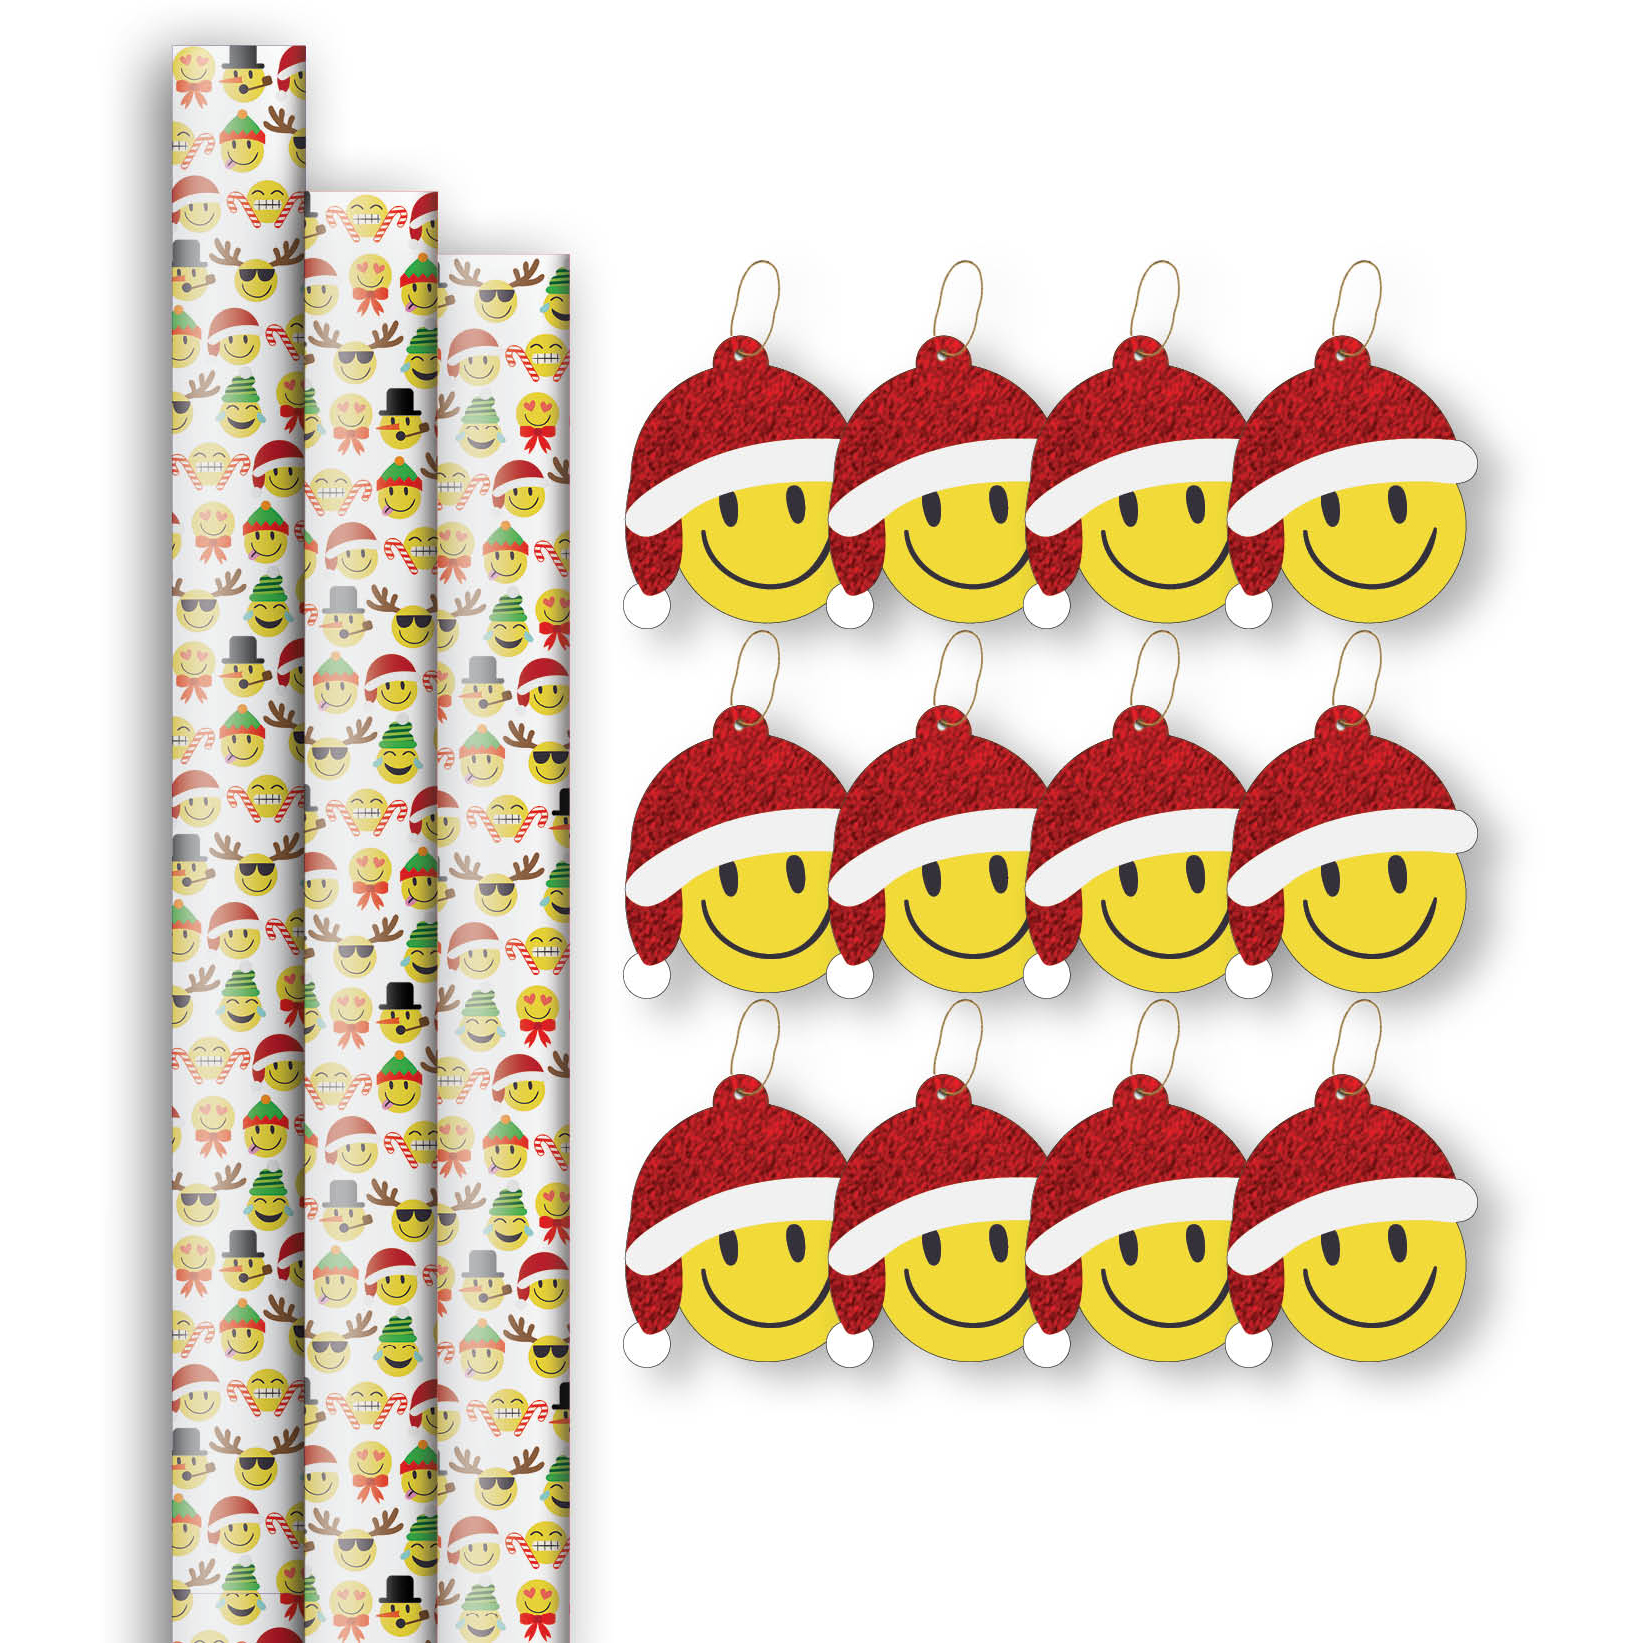 Jillson & Roberts Premium Gift Wrap Roll & Gift Tag Assortment, Christmas Emoji Designs (3 Rolls & 12 Tags)